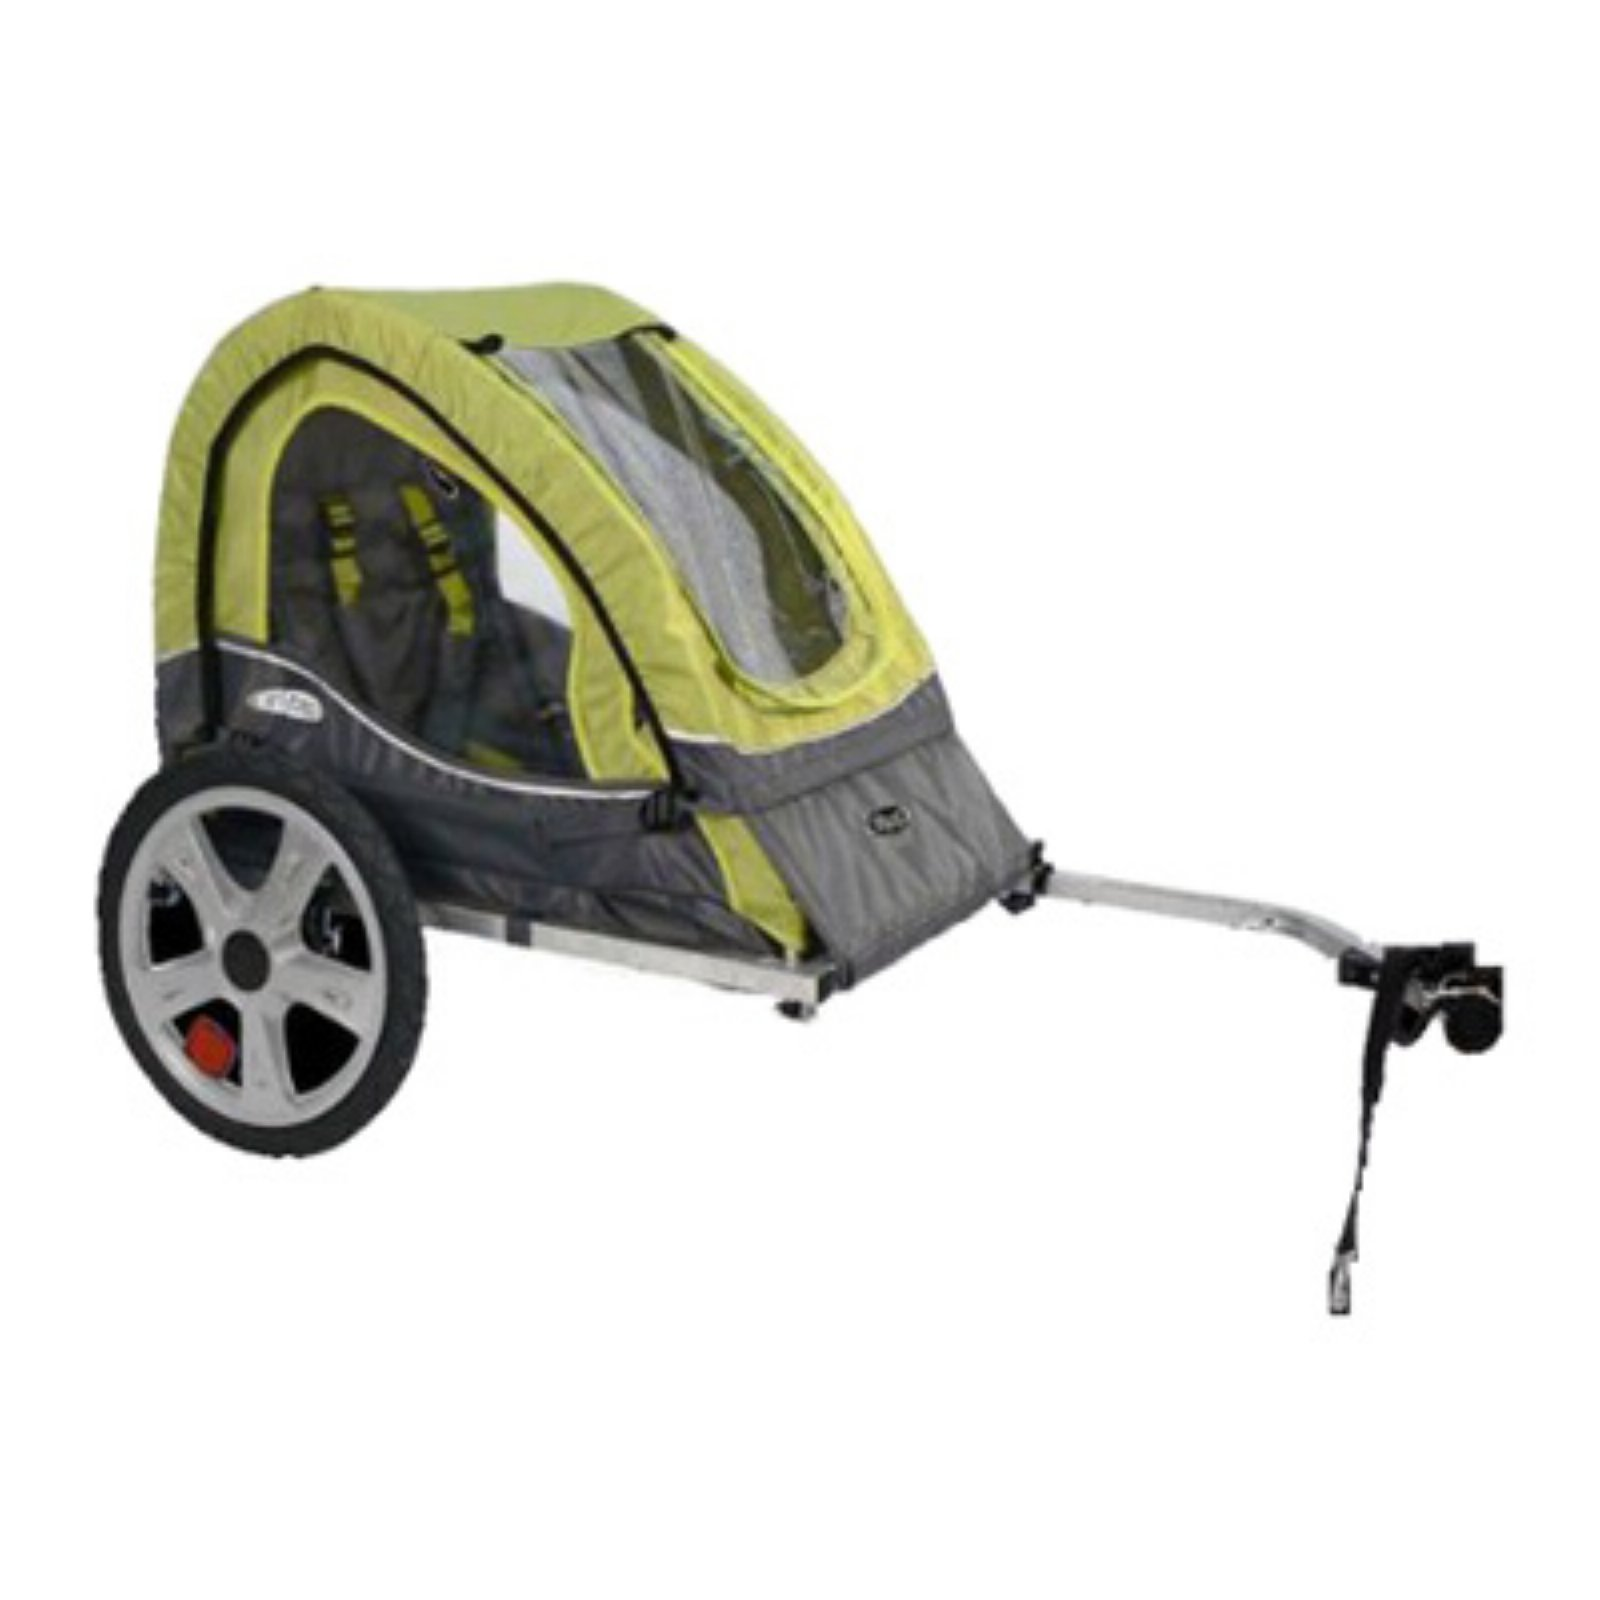 InStep Sync Single Child Bike Trailer - Green/Grey